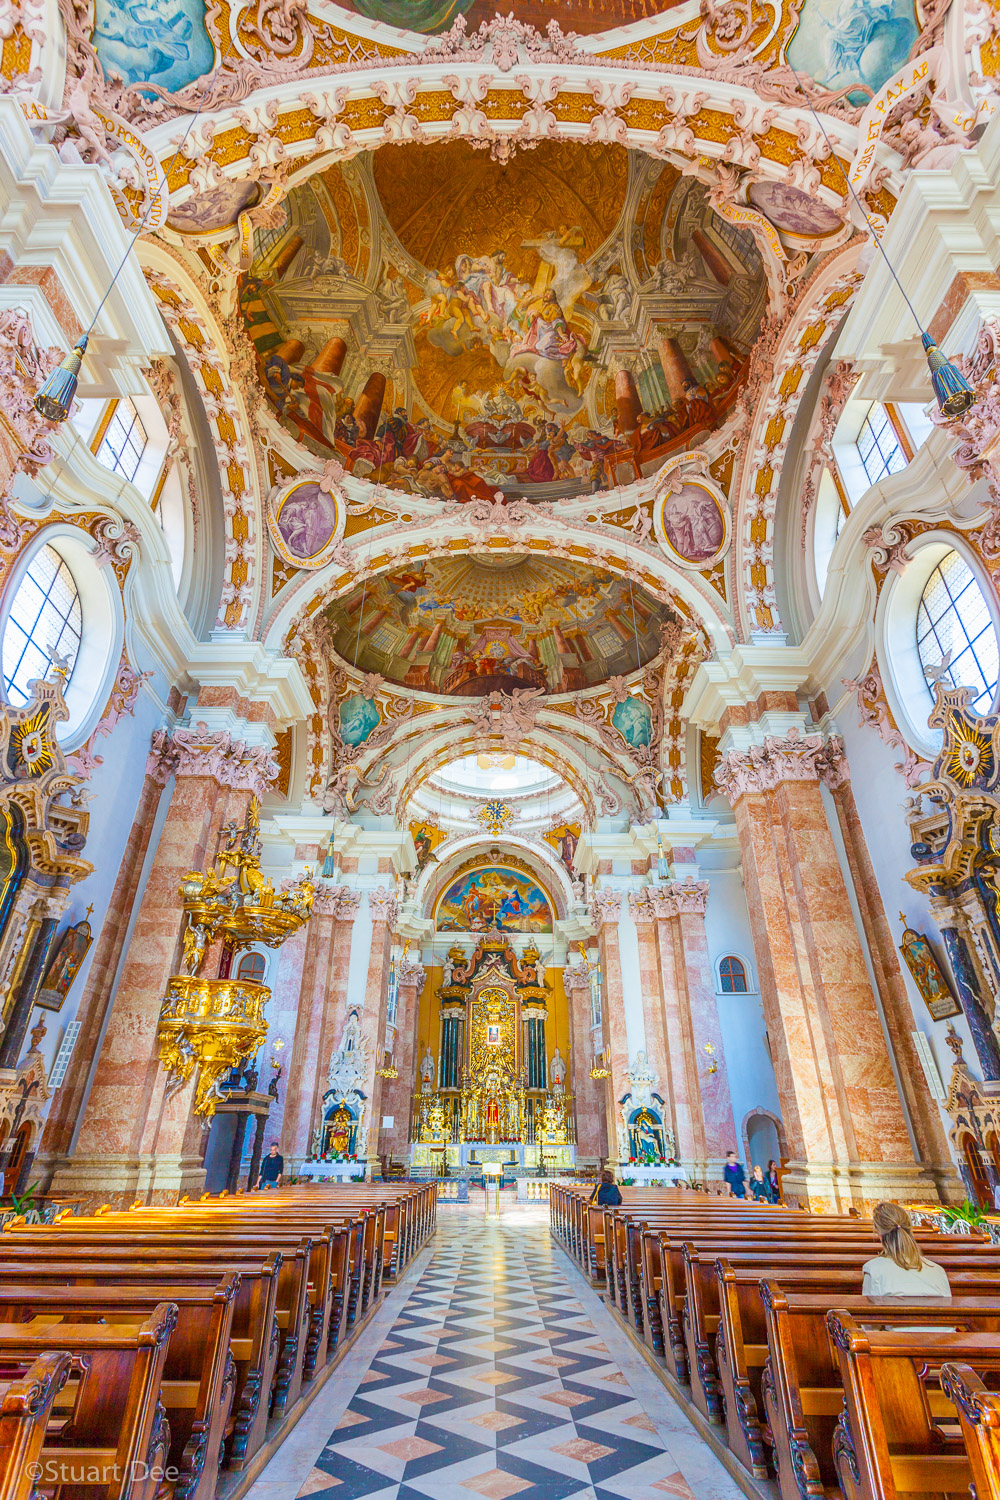 Interior, Innsbruck Cathedral, Innsbruck, Austria. Also known as the Domkirche, St. Jakob Cathedral, and Cathedral of St. James, it is one of the most important in the city. It is built in the 18th century Baroque style.